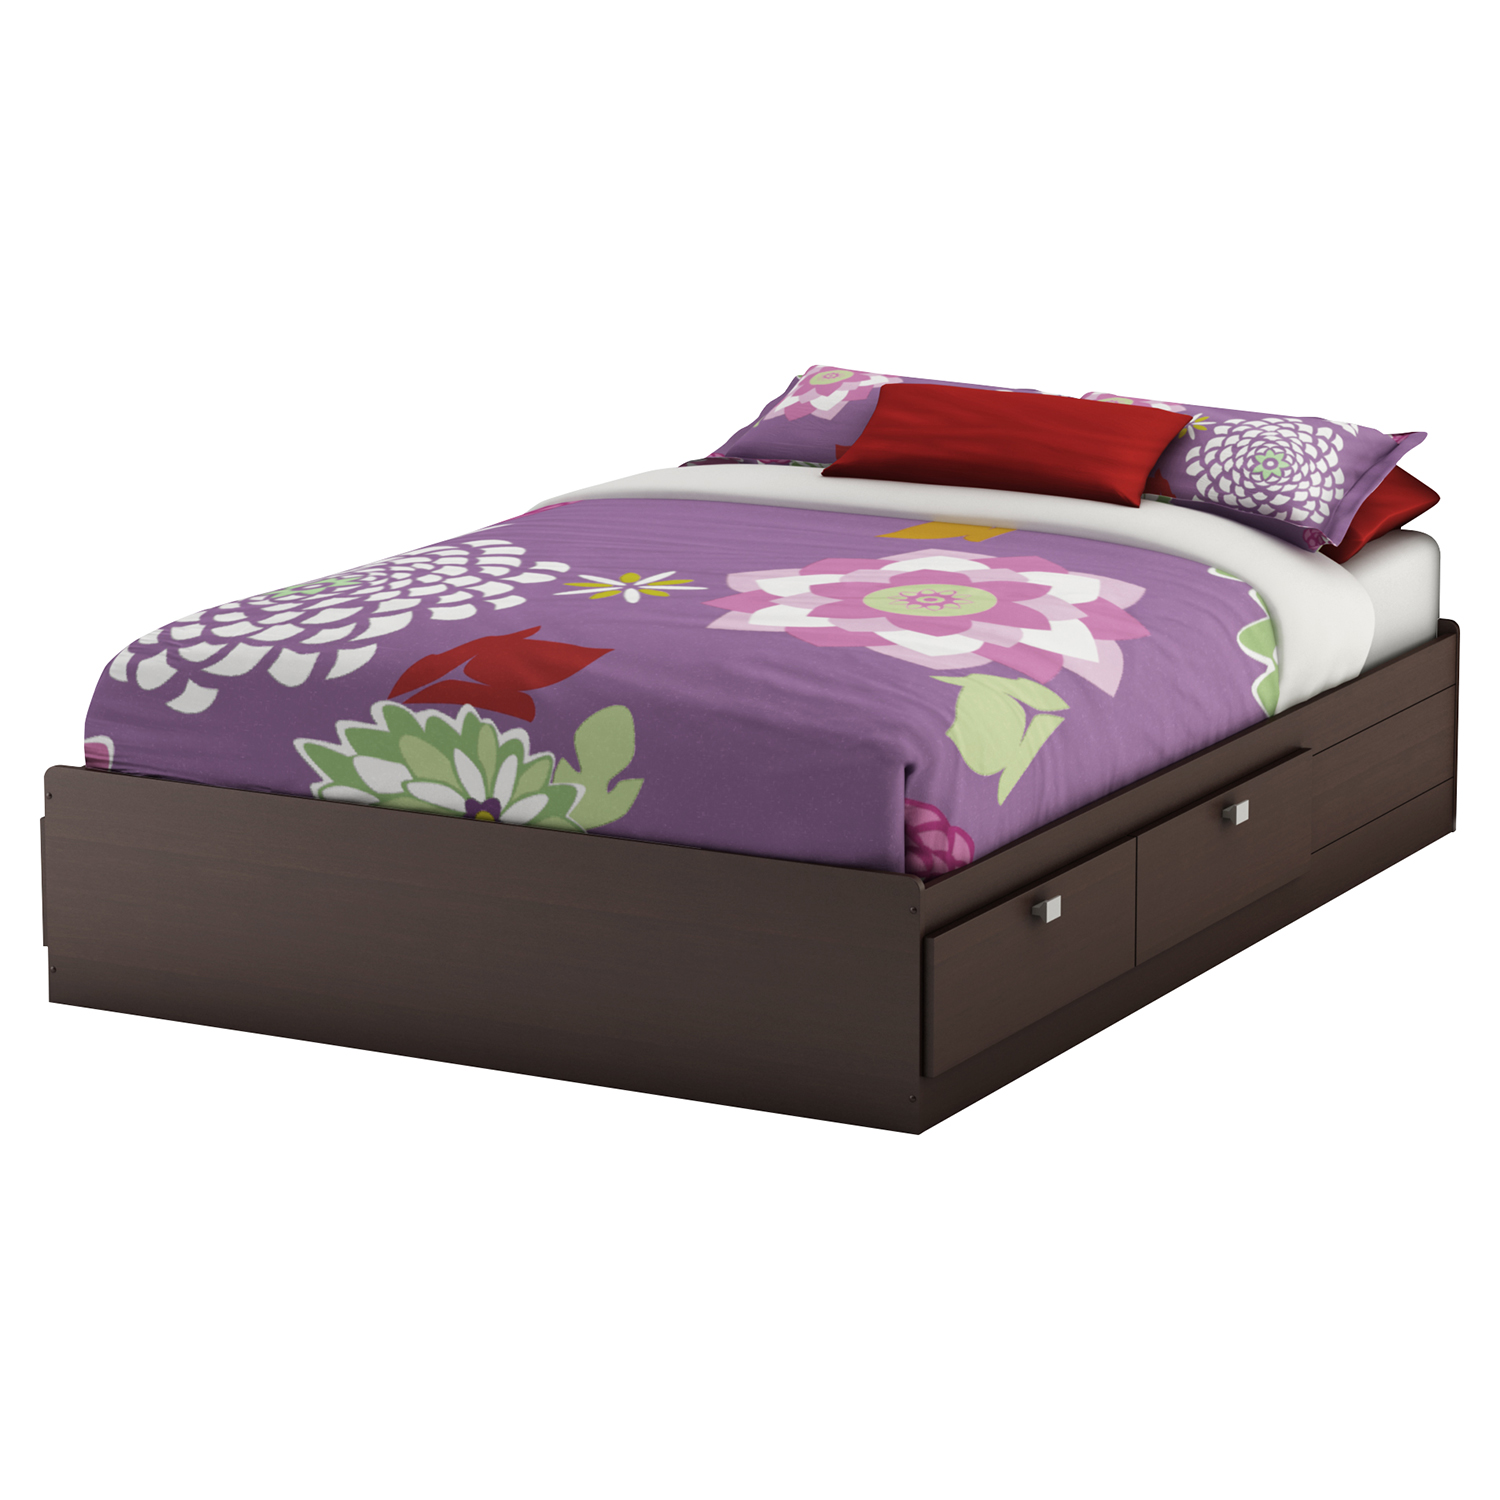 Karma Full Mates Bed - 4 Drawers, Chocolate - SS-9000D1